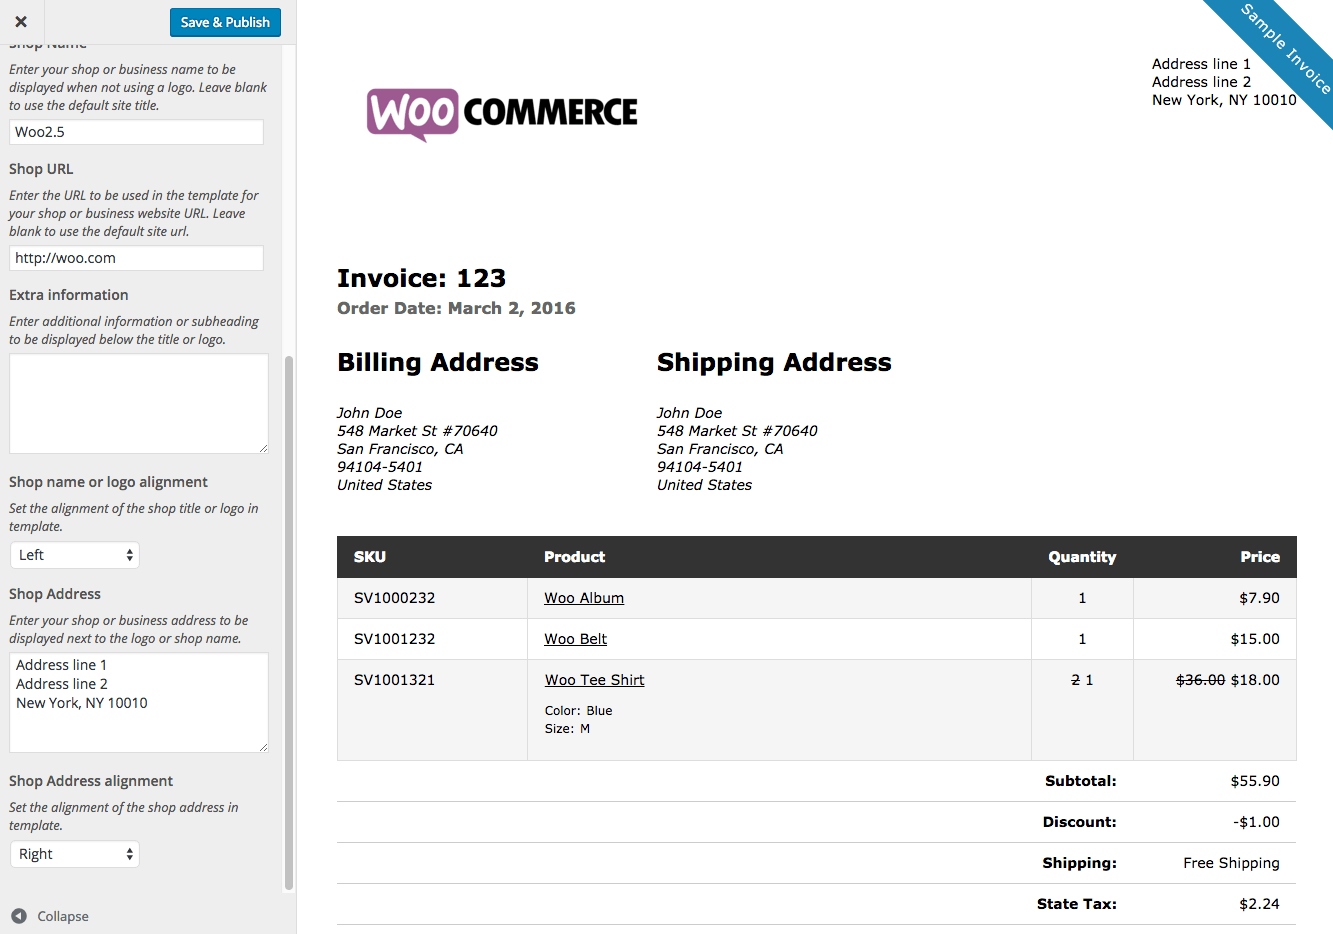 Pigbrotherus  Pleasant Woocommerce Print Invoices Amp Packing Lists  Woocommerce Docs With Marvelous Woocommerce Print Invoices  Packing Lists Customizer With Cool Kelley Blue Book Invoice Price Also Invoice Template Microsoft Office In Addition My Invoices Software And Car Repair Invoice Template As Well As Free Online Invoice Forms Additionally How To Process An Invoice From Docswoocommercecom With Pigbrotherus  Marvelous Woocommerce Print Invoices Amp Packing Lists  Woocommerce Docs With Cool Woocommerce Print Invoices  Packing Lists Customizer And Pleasant Kelley Blue Book Invoice Price Also Invoice Template Microsoft Office In Addition My Invoices Software From Docswoocommercecom